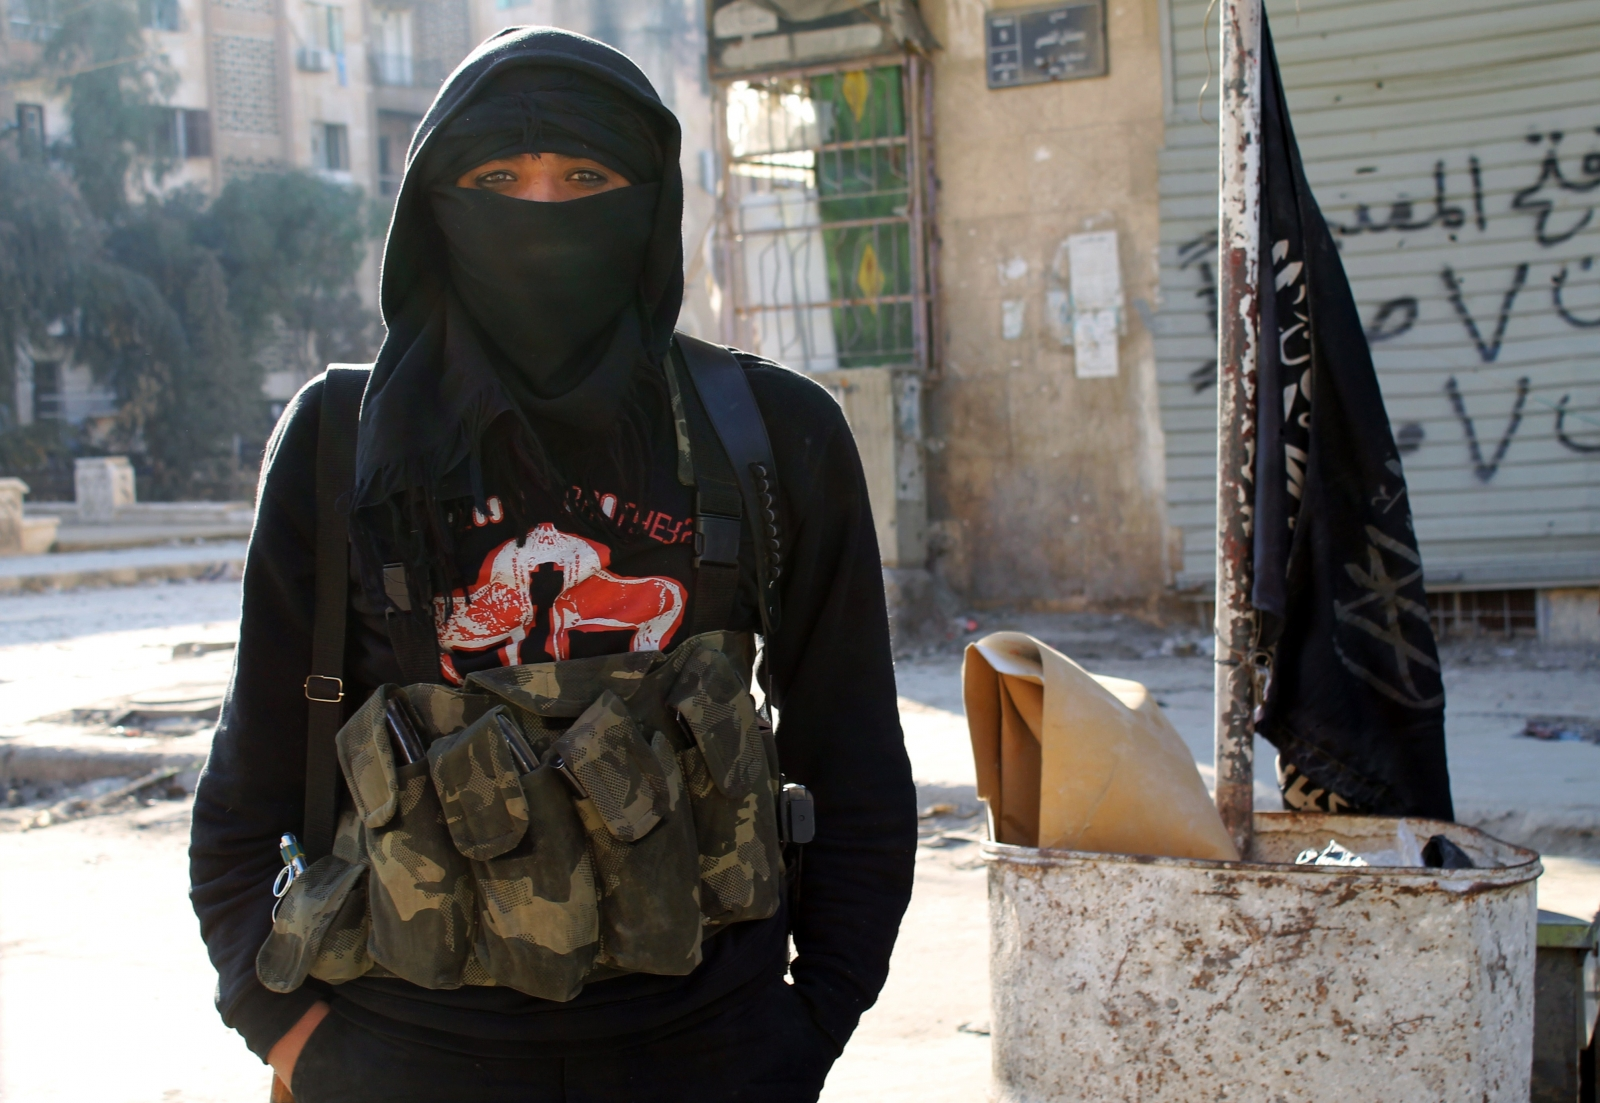 Member of jihadist group Jabhat al Nusra in Syria. (Getty)